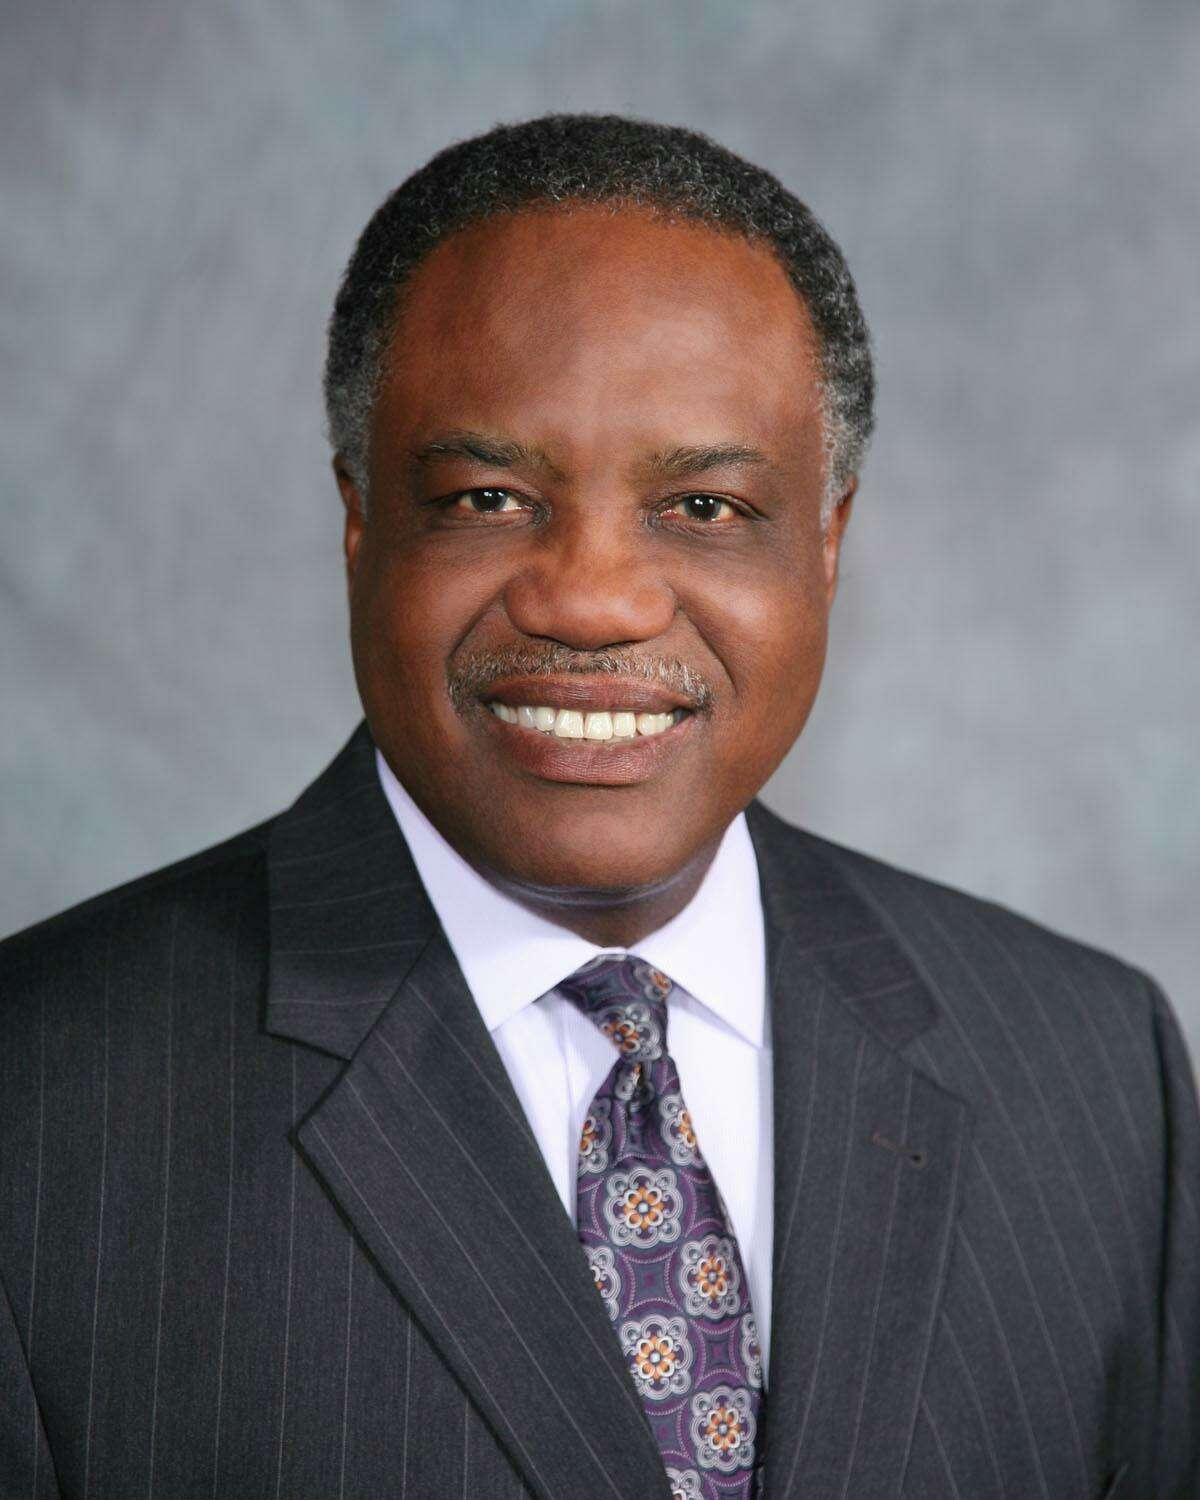 Dr. Thomas Randle became Lamar Consolidated ISD's superintendent of schools in 2001.